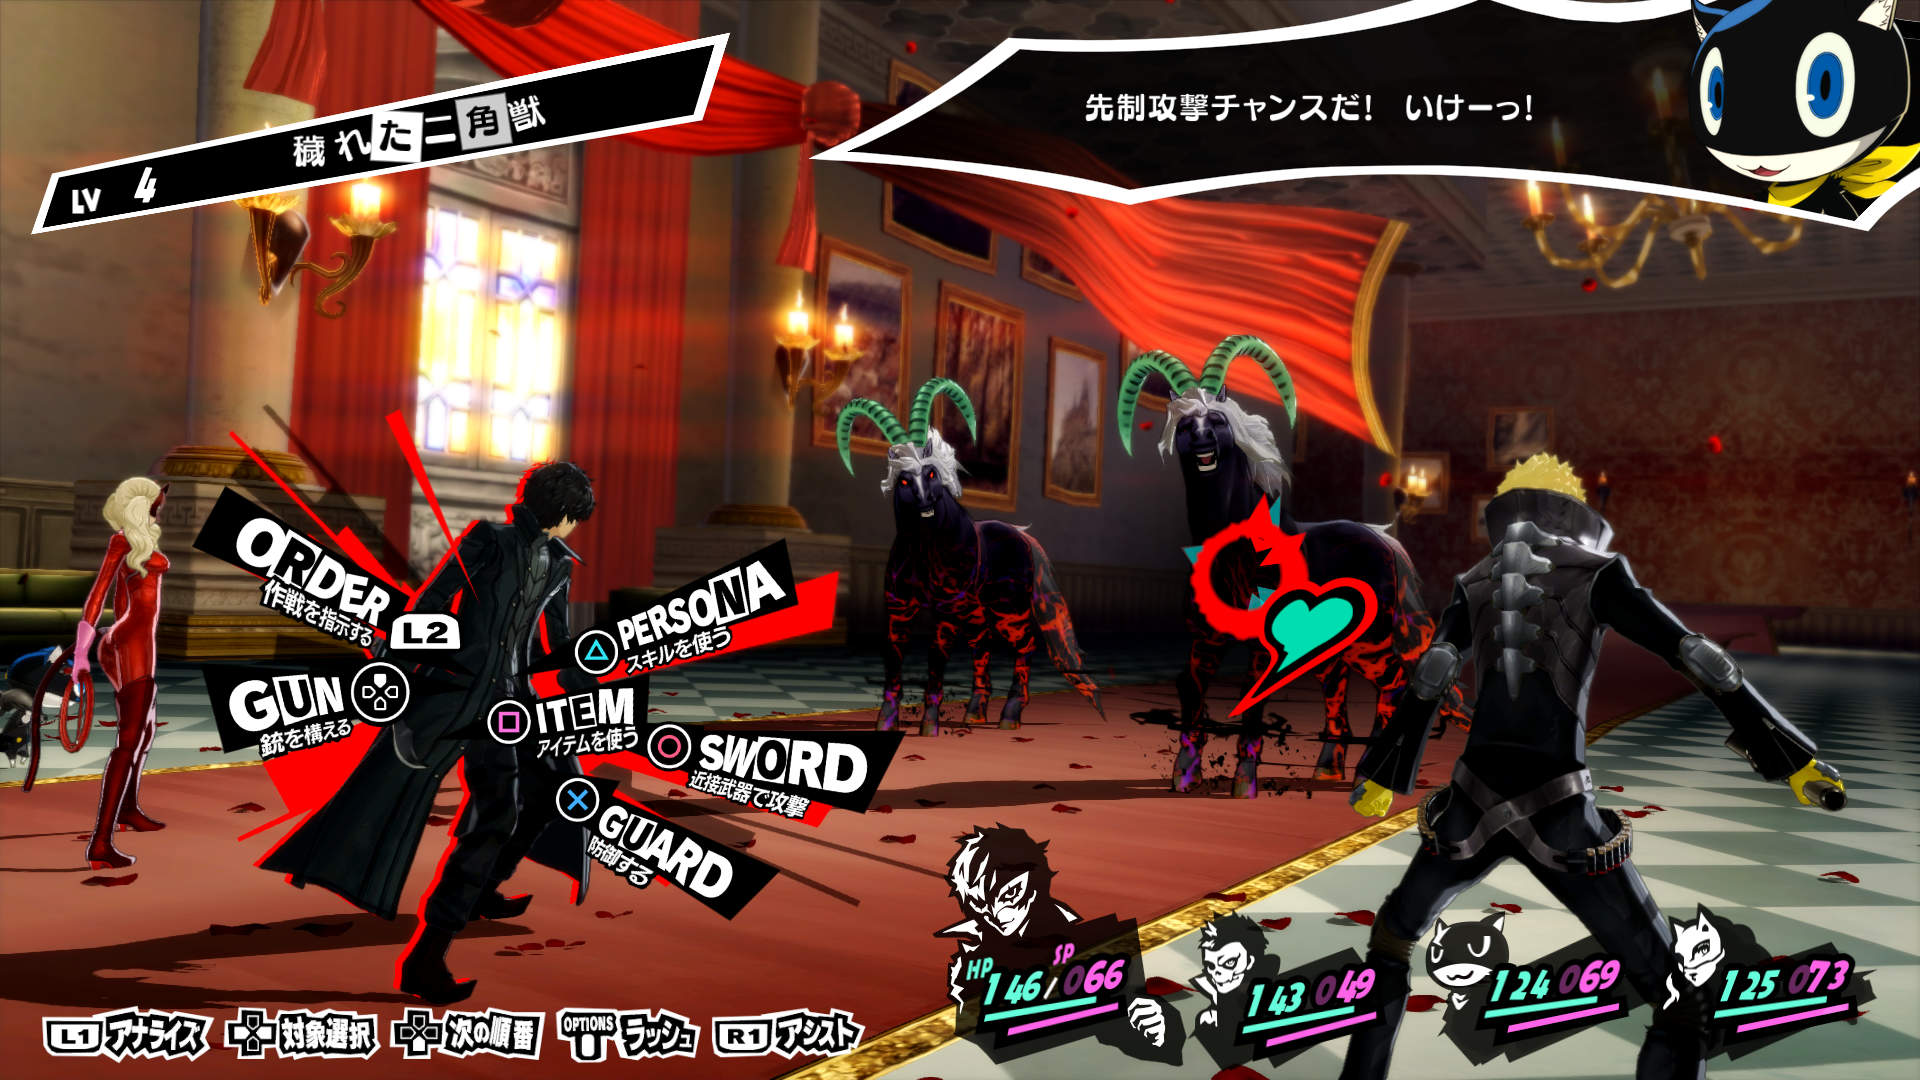 Persona 5 Backgrounds, Compatible - PC, Mobile, Gadgets| 1920x1080 px